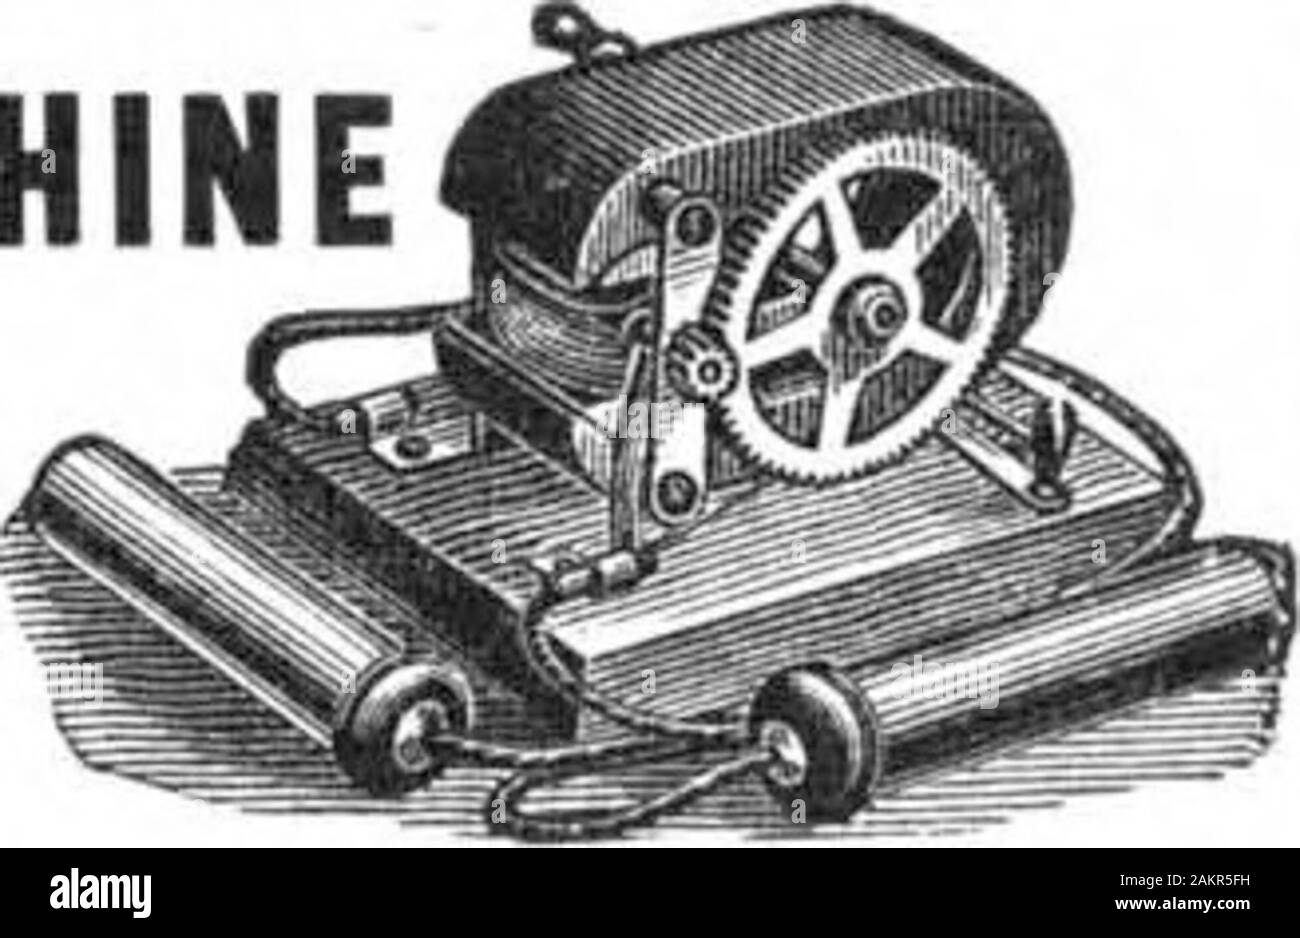 Scientific American Volume 85 Number 10 (September 1901) . 92 Cemre street, New York. 111. THE LATEST TICKLING MACHINE Fun, Instruction andInvigoration combined. By express $1.00 ; By mail 25 cents extra. R. I. Telephone & Electric Co. 22 Calender St., Providence, R. I.. American Sheet Steel Company Battery Park Building New York Manufacturers of all varieties of Iron and Steel Sheets Black and Galvanized Plain and Painted Flat, Corrugated and V Crimped Apollo Best Bloom Galvanized Sheets W. Dewees Wood Companys Planished Iron W. Dewees Wood Companys Refined Iron Wellsville Polished Steel Shee Stock Photo